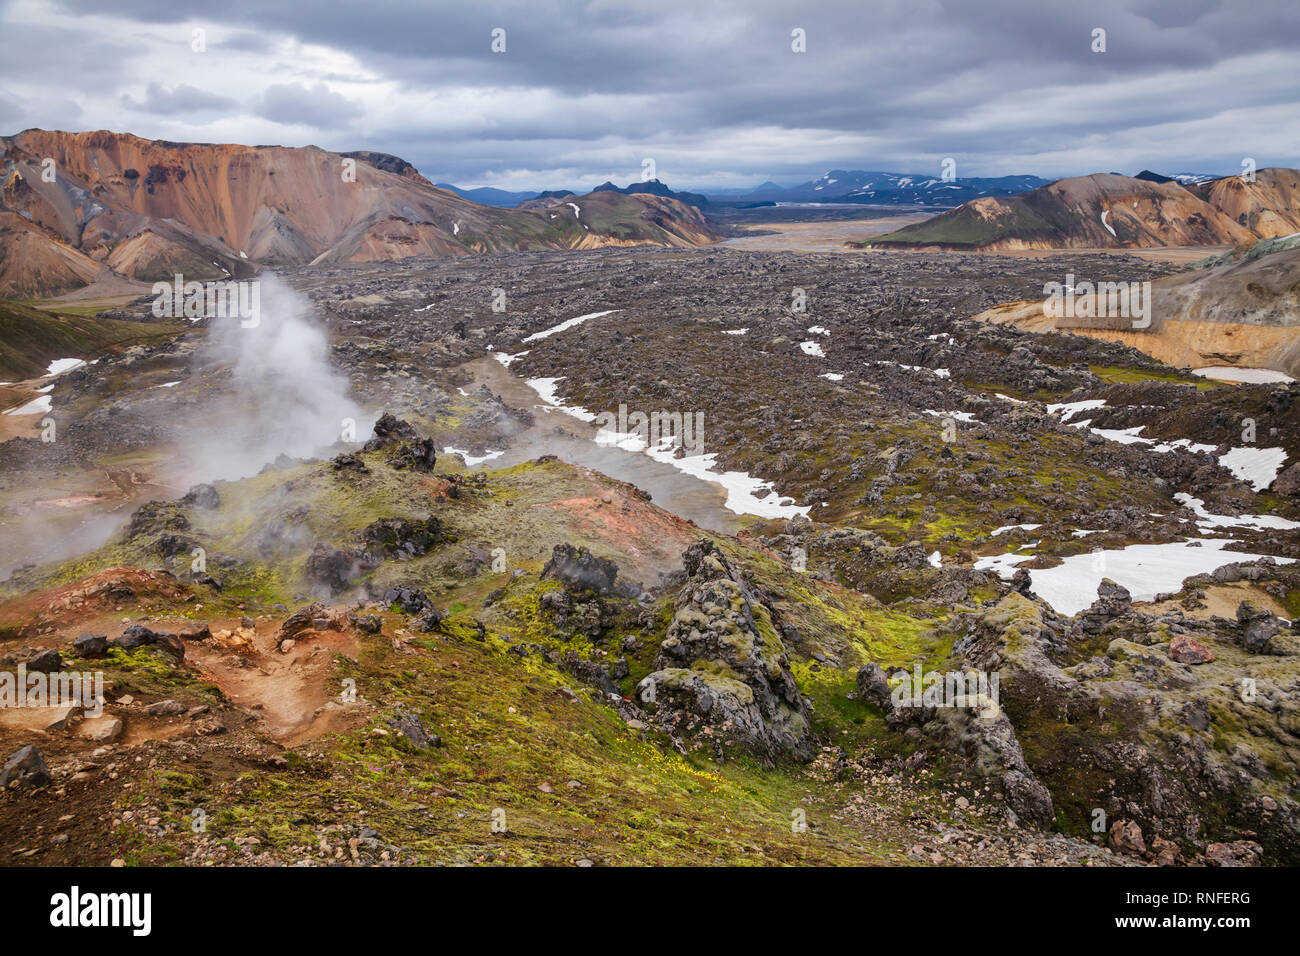 Laugahraun lava field and Landmannalaugar, a natural park in the Fjallabak Nature Reserve, famous for its hiking trails through stunning landscapes of - Stock Image